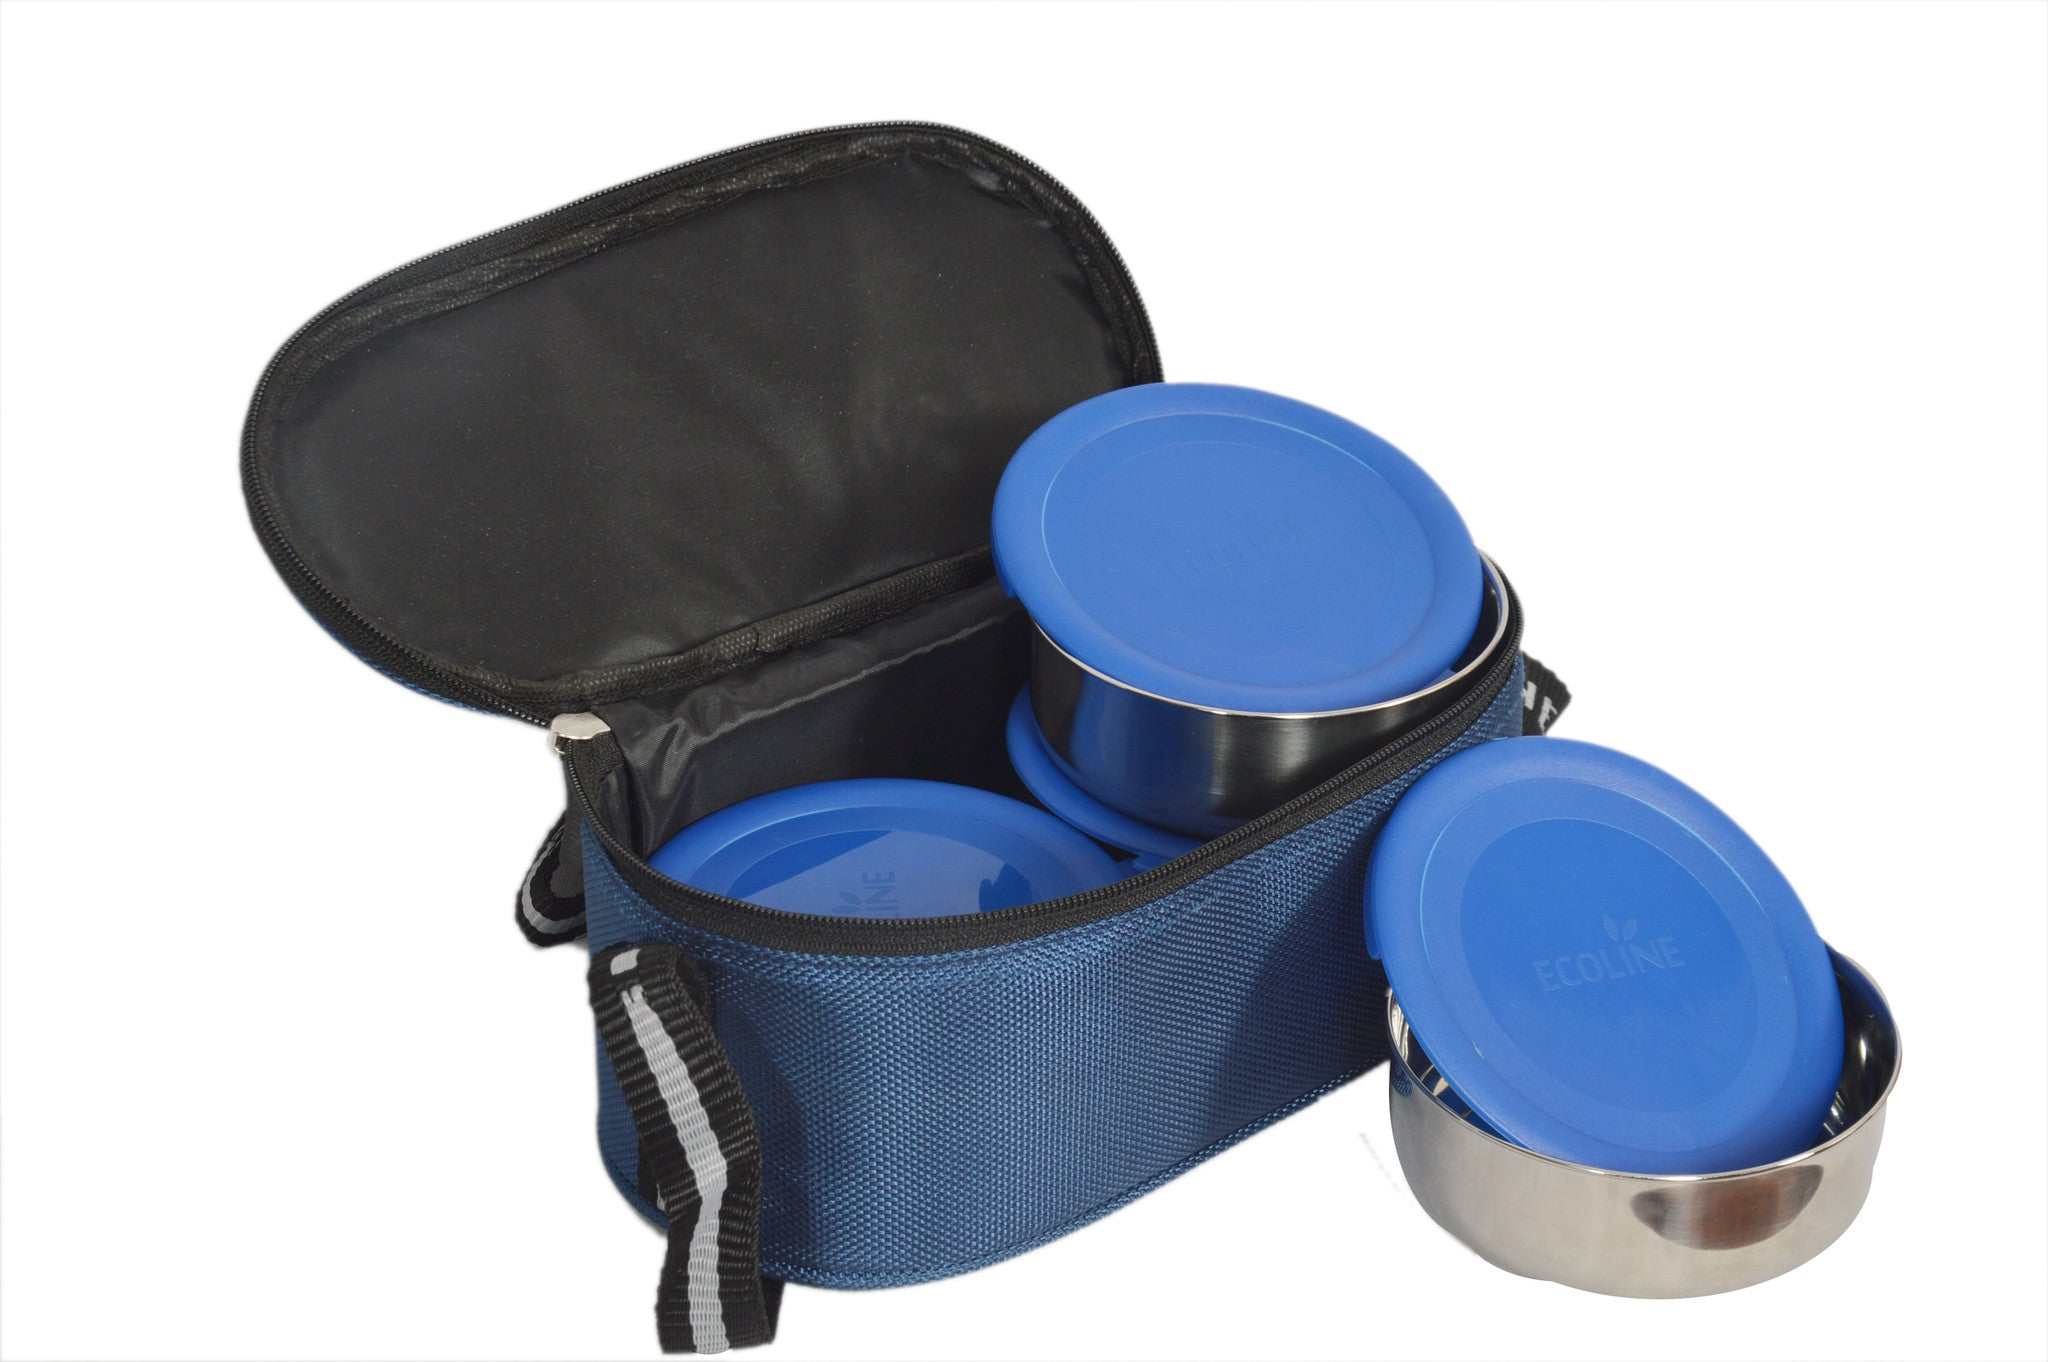 Ecoline Ezee Lunch 4 Stainless Steel Lunch Box with Leak-free Lids & Fabric Pouch